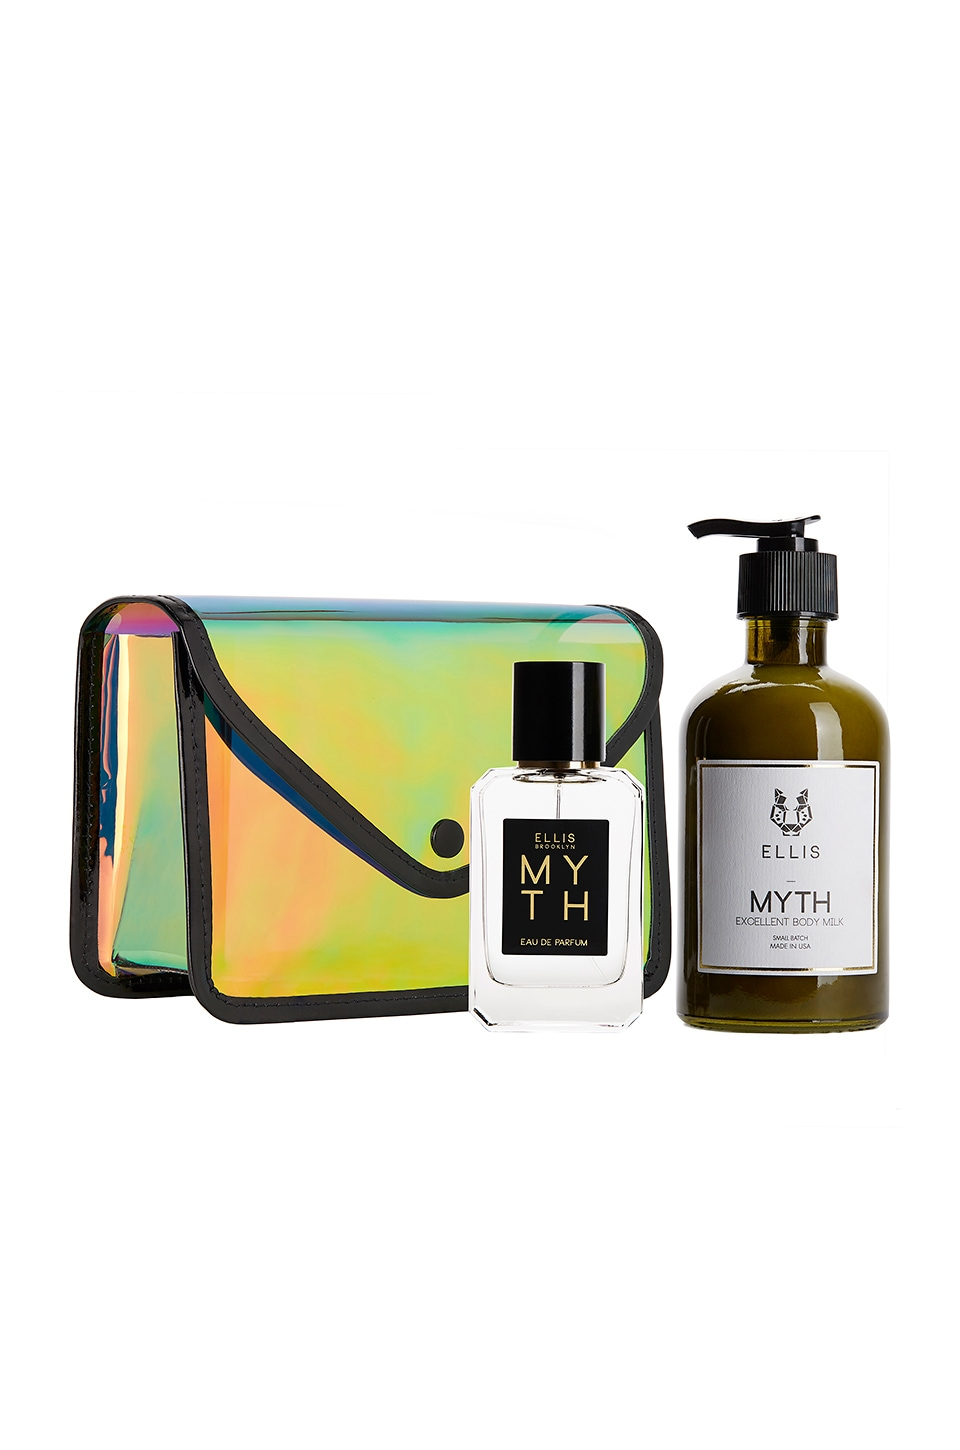 Myth Holographic Gift Set: A Brooklyn Story